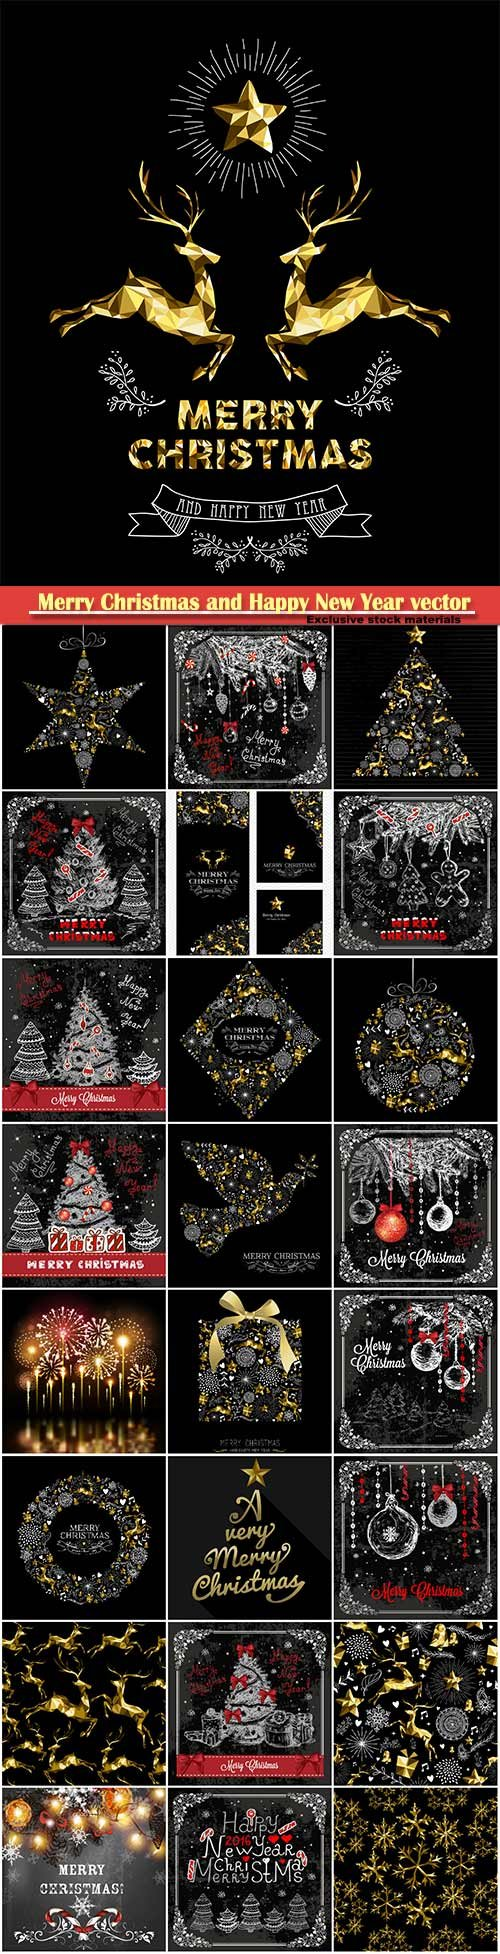 Merry Christmas and Happy New Year vector design # 17